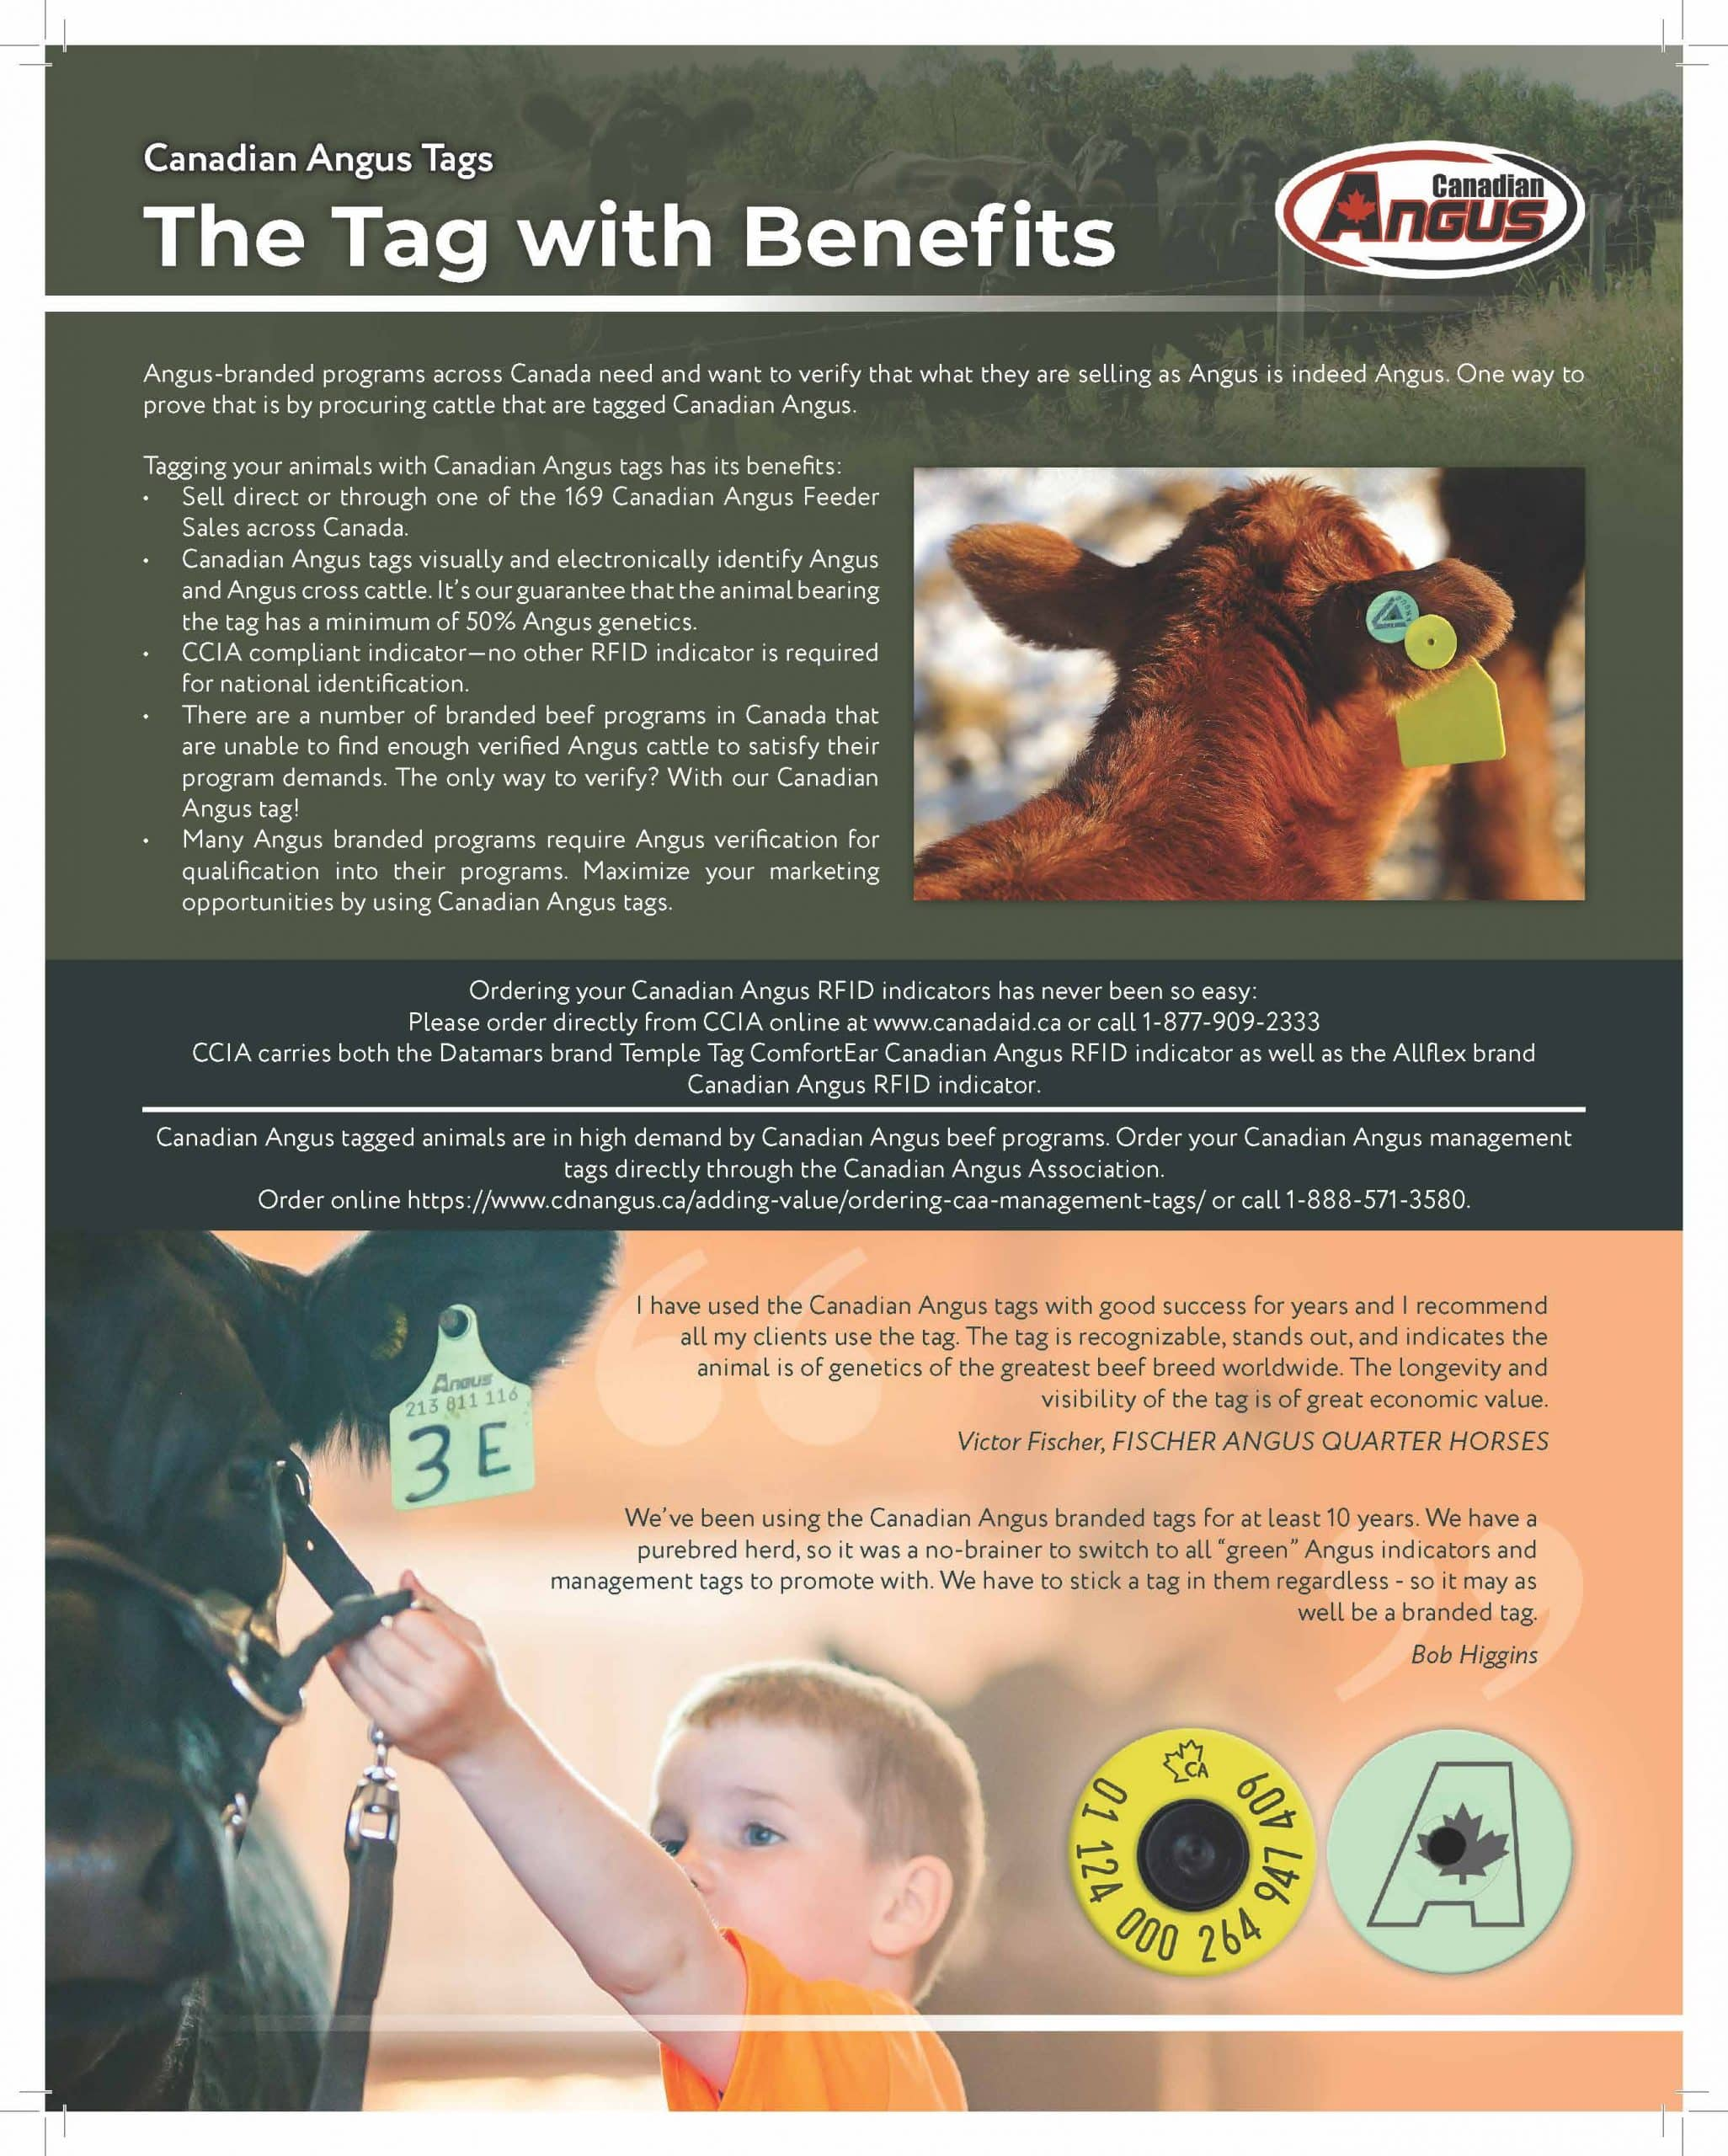 Canadian Angus Tag Ad